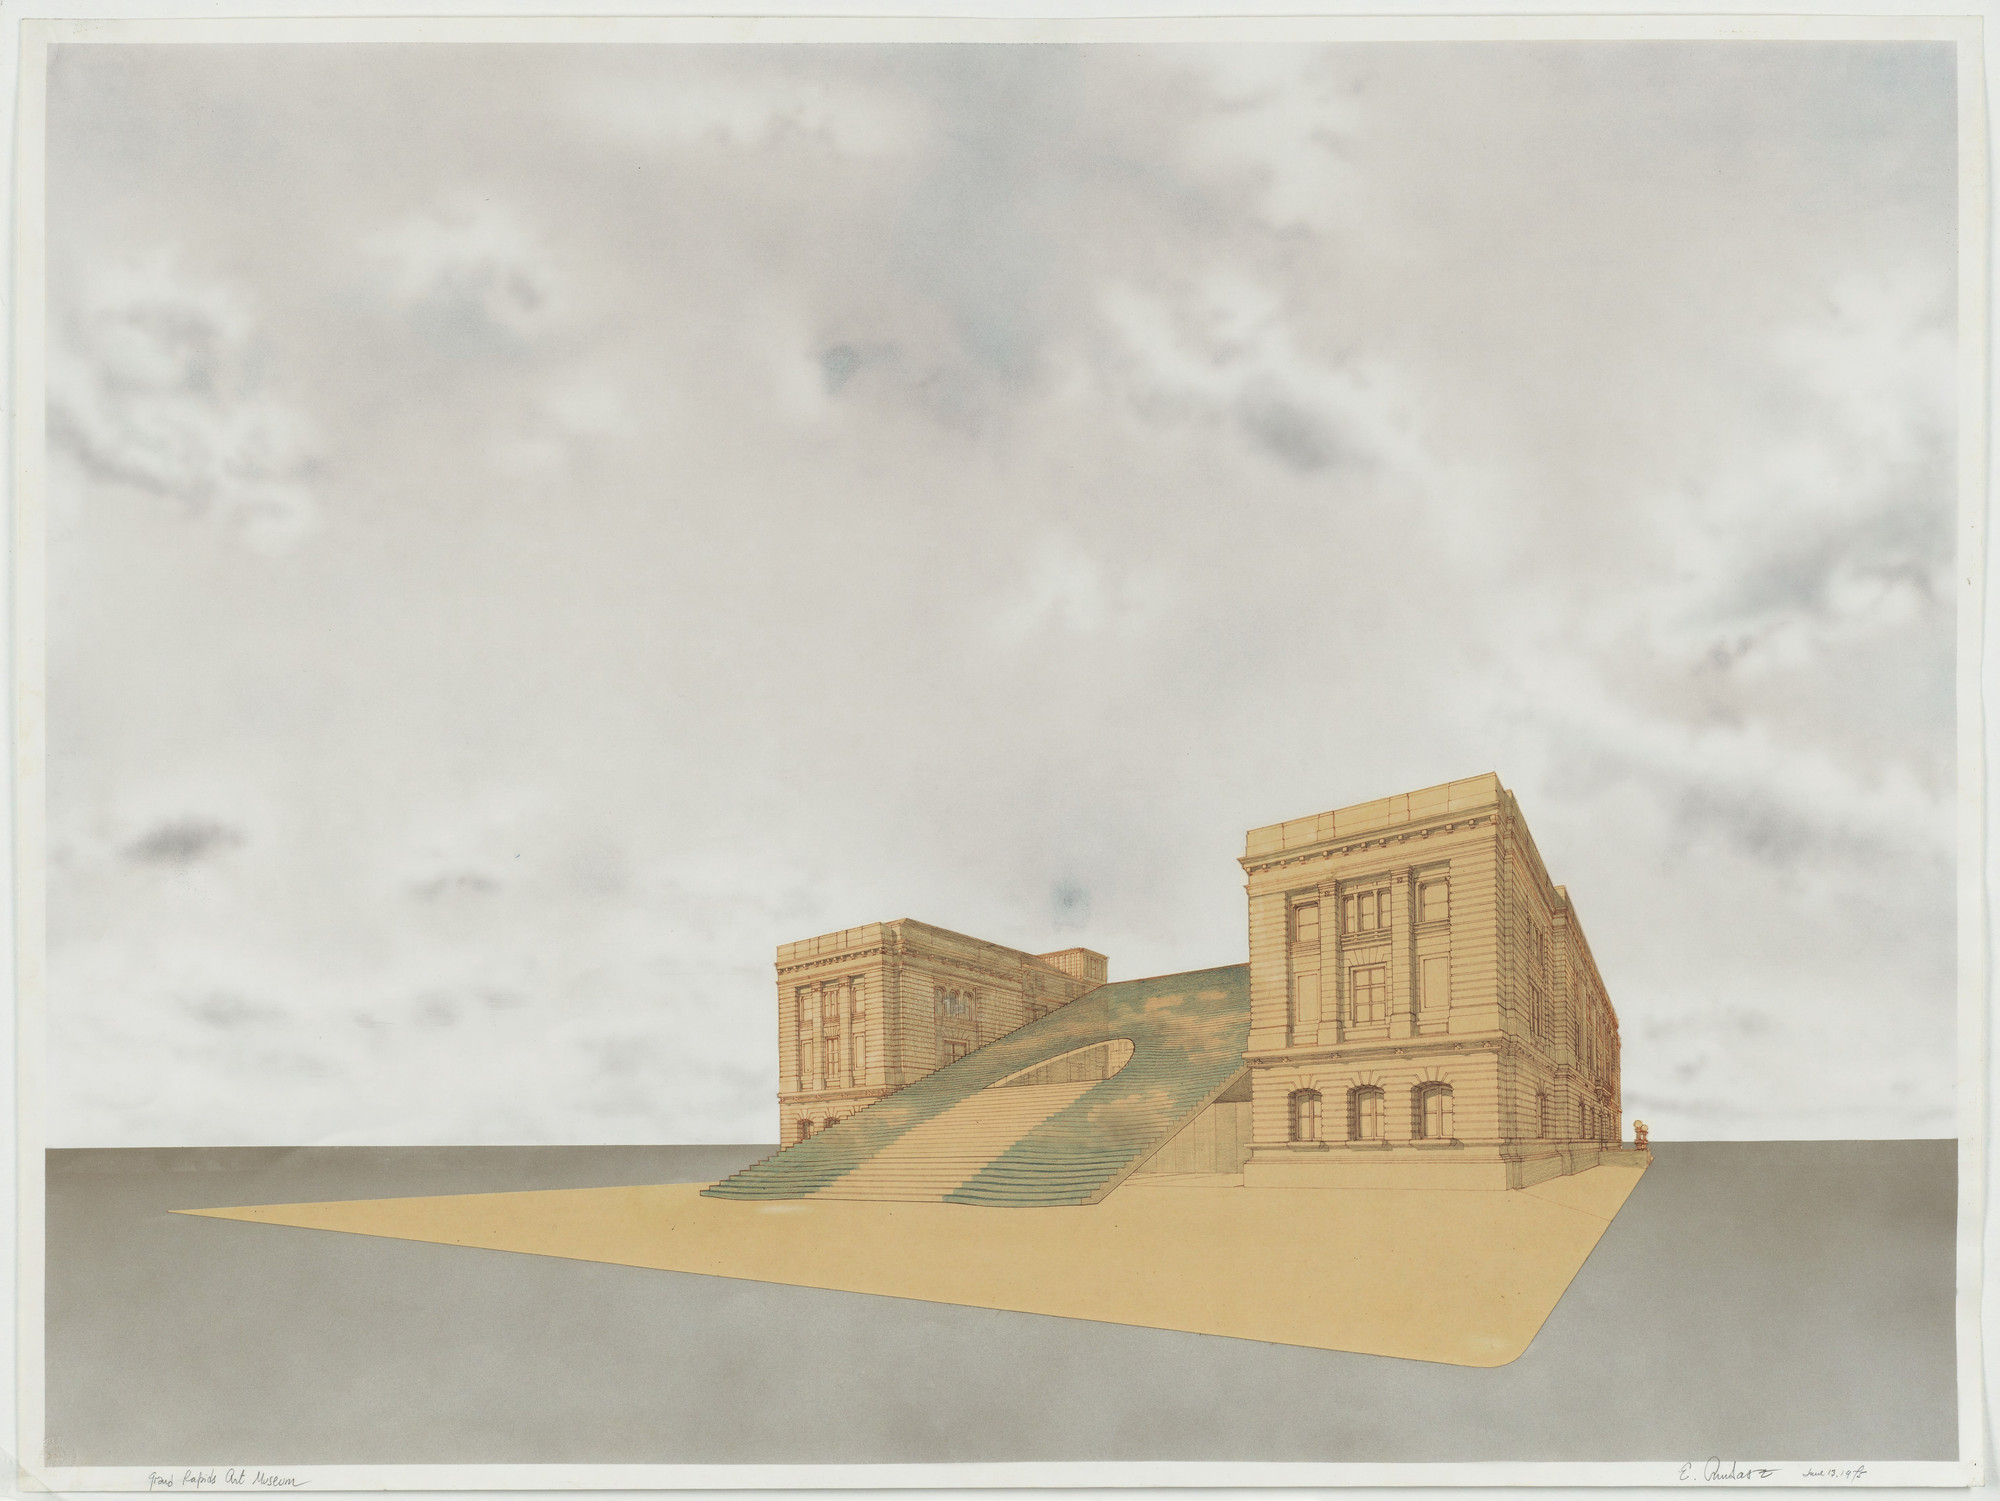 Emilio Ambasz. Grand Rapids Art Museum, project, Grand Rapids, Michigan, Perspective. 1975